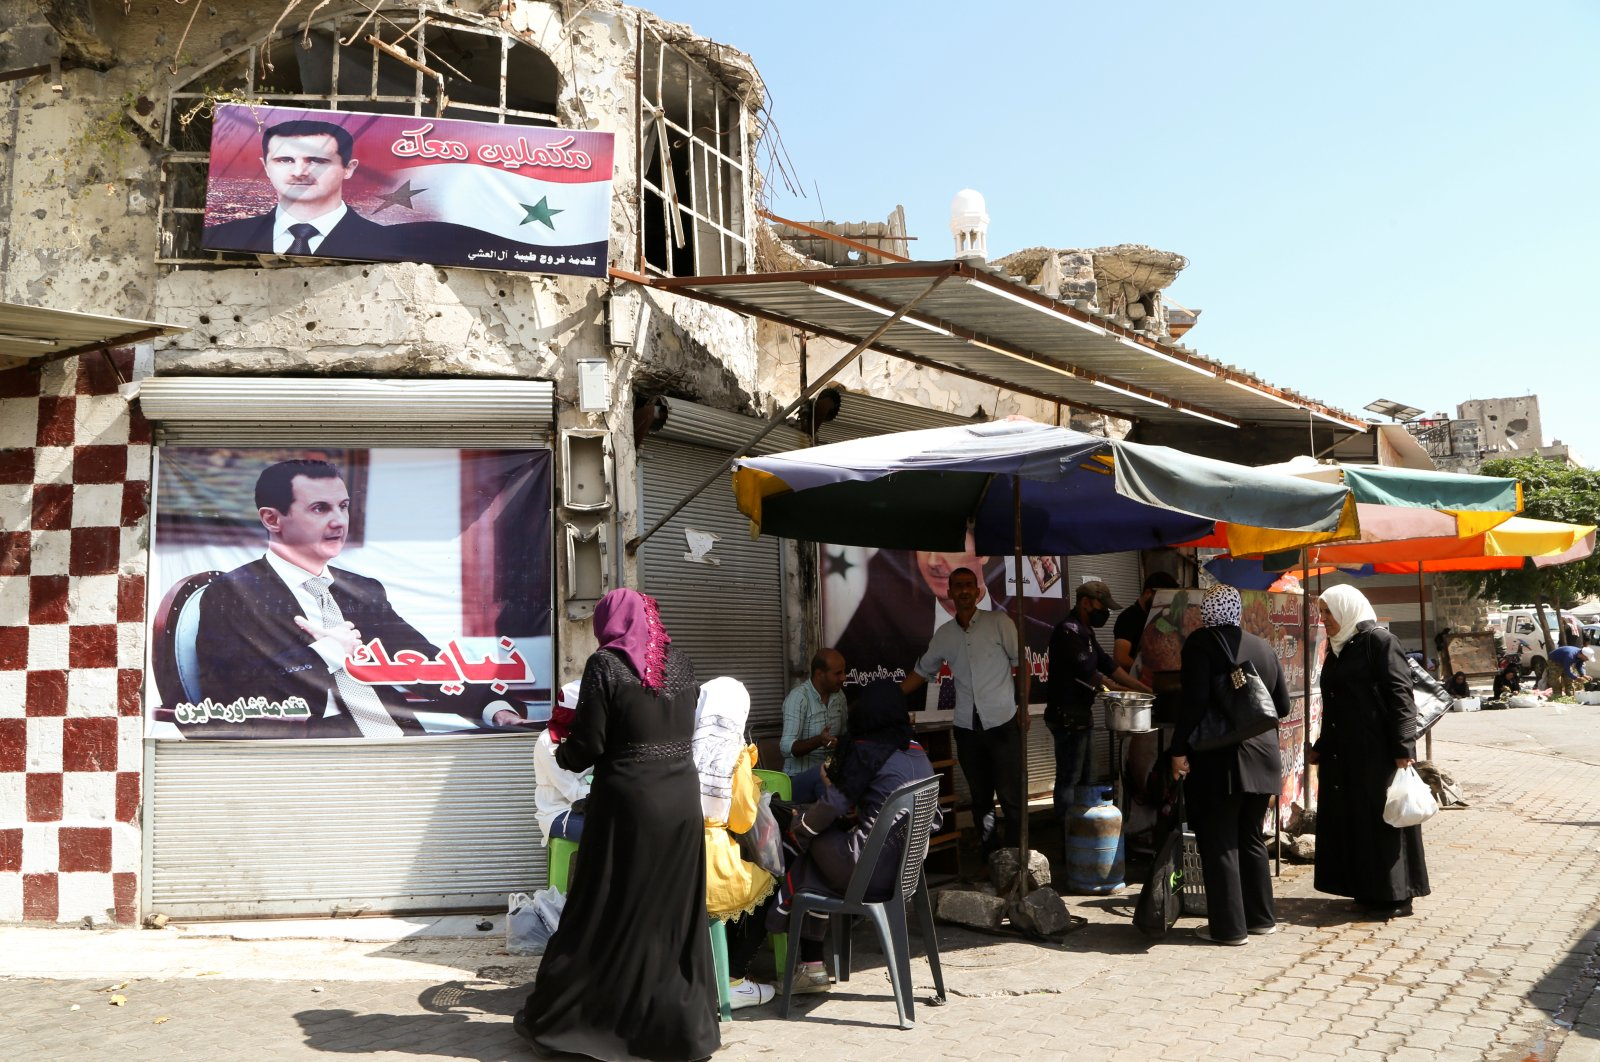 People stand near posters depicting Bashar Assad in Homs, Syria, Oct. 3, 2021. (REUTERS)